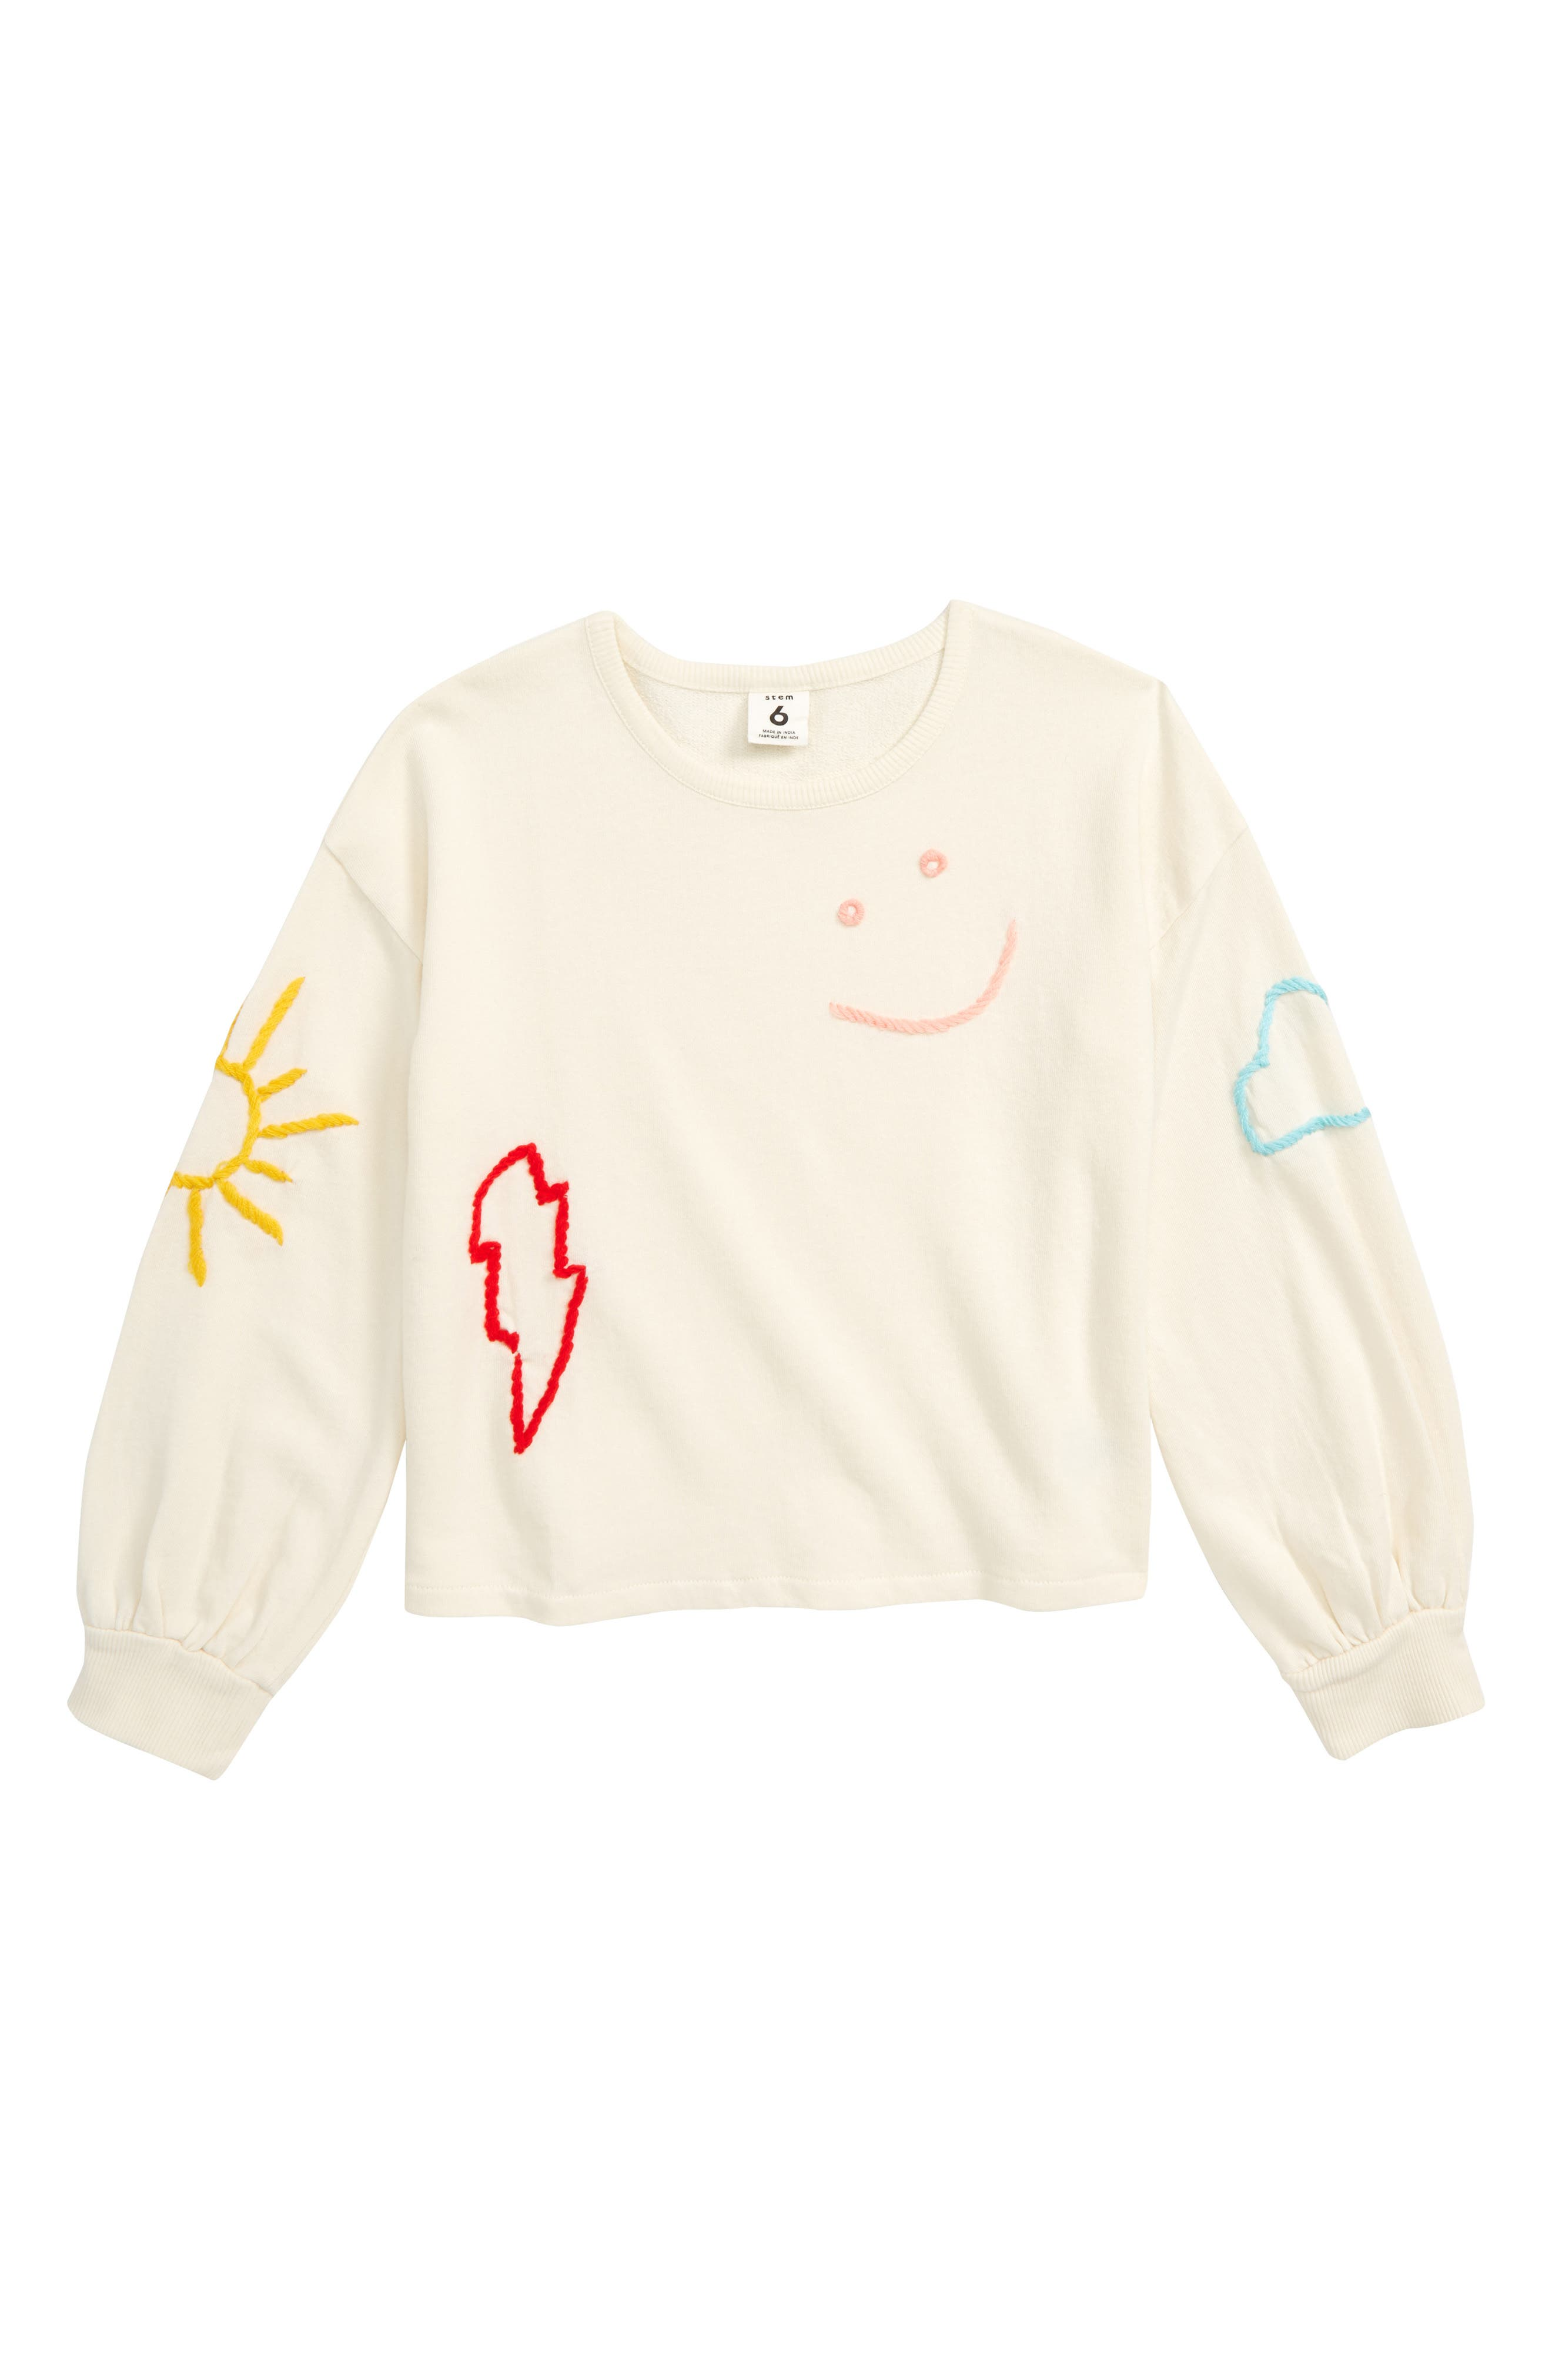 Embroidered Sweatshirt, Main, color, IVORY ANTIQUE ICONS